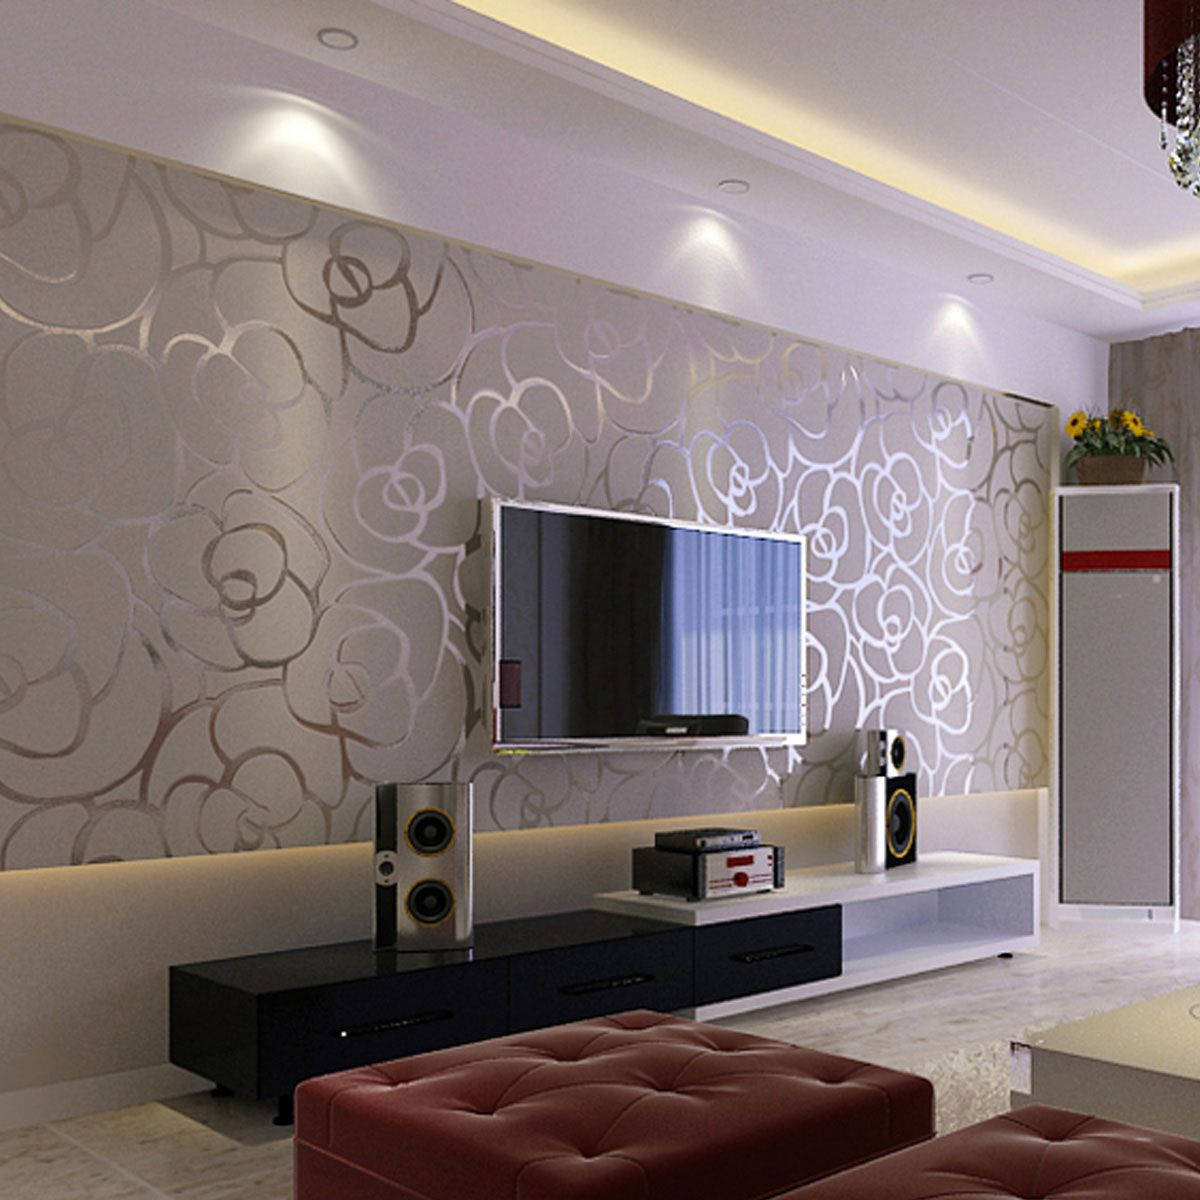 Home Wallpaper Design Decoration Idea 15 Wallpaper Designs 4 Concepts For Your Own Home